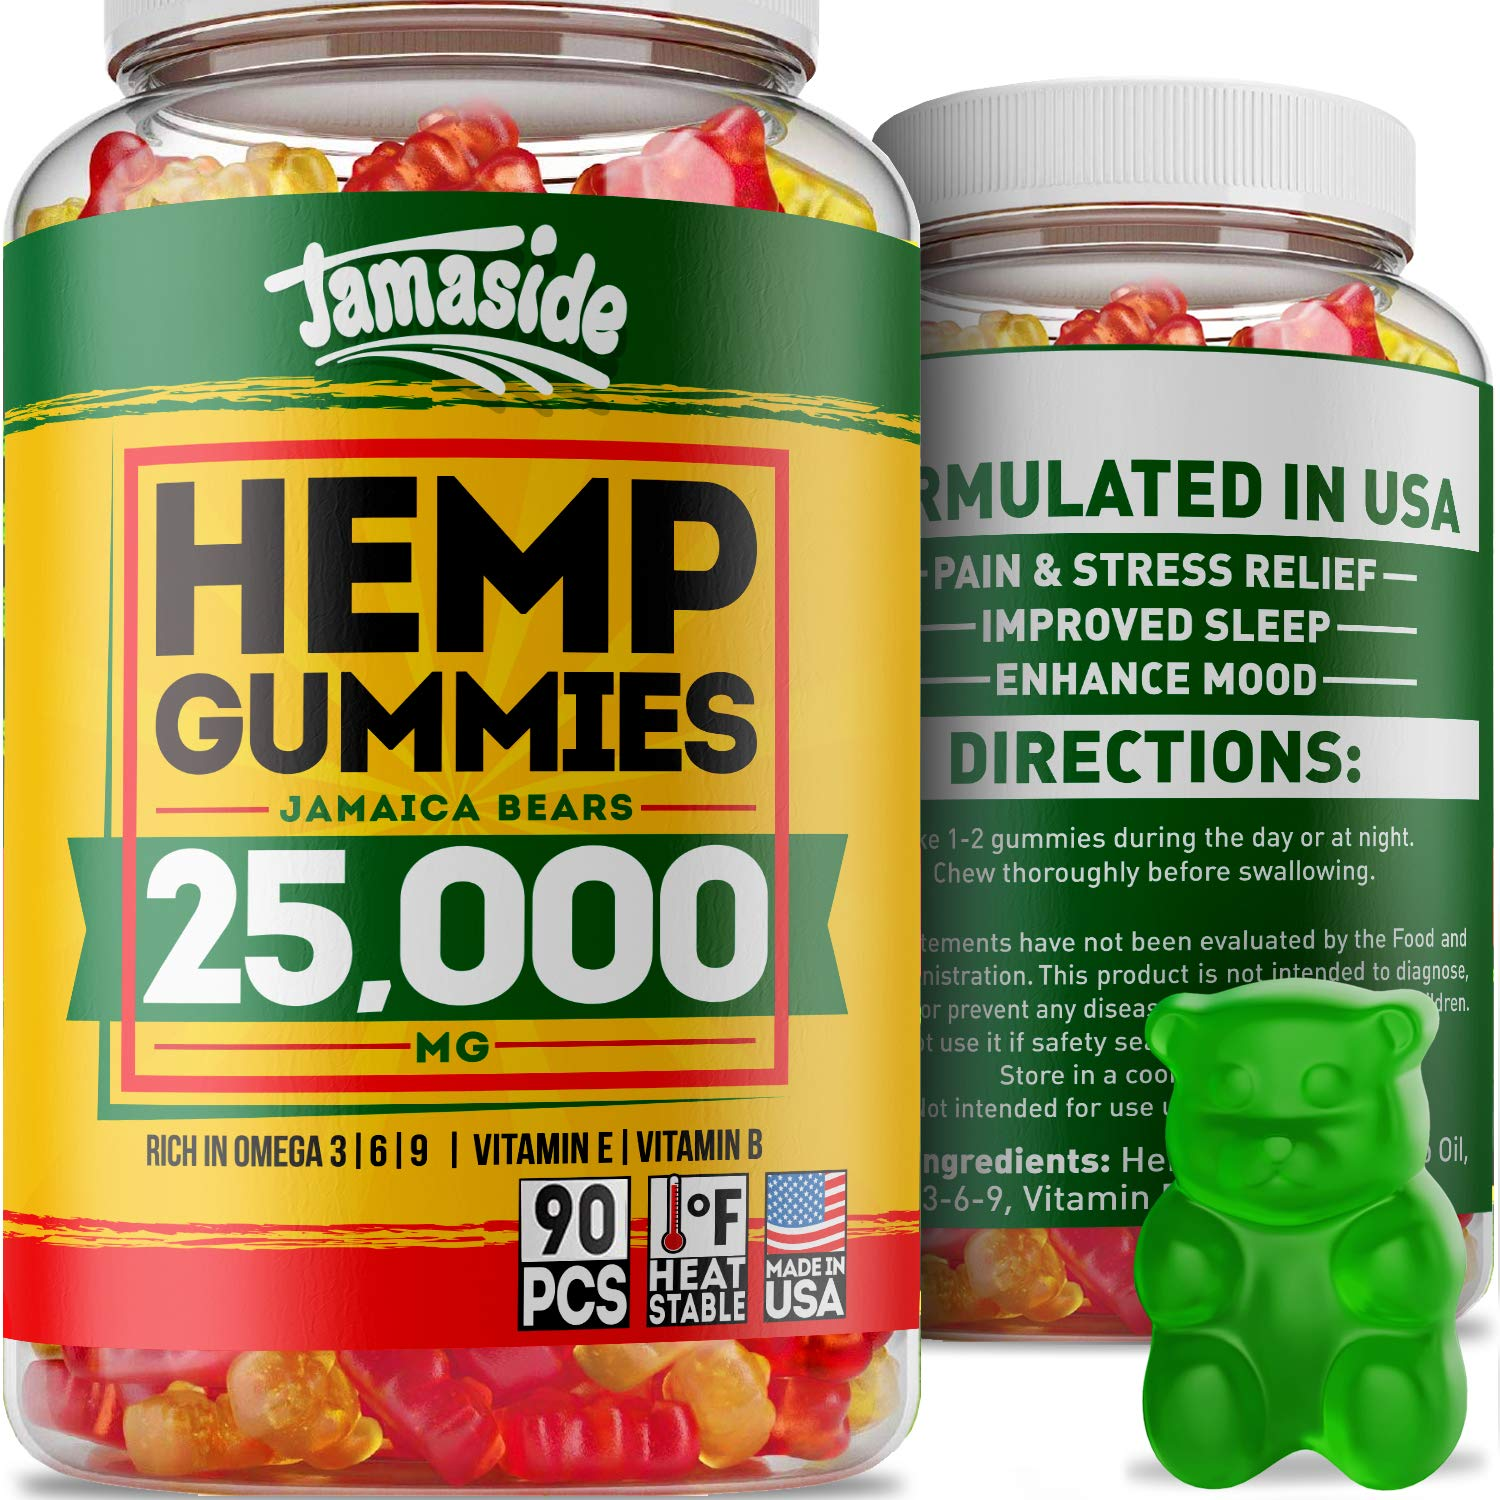 Hemp Gummies 25000 MG - Made in USA - 277 MG Hemp - Anxiety & Stress Relief, by Jamaside